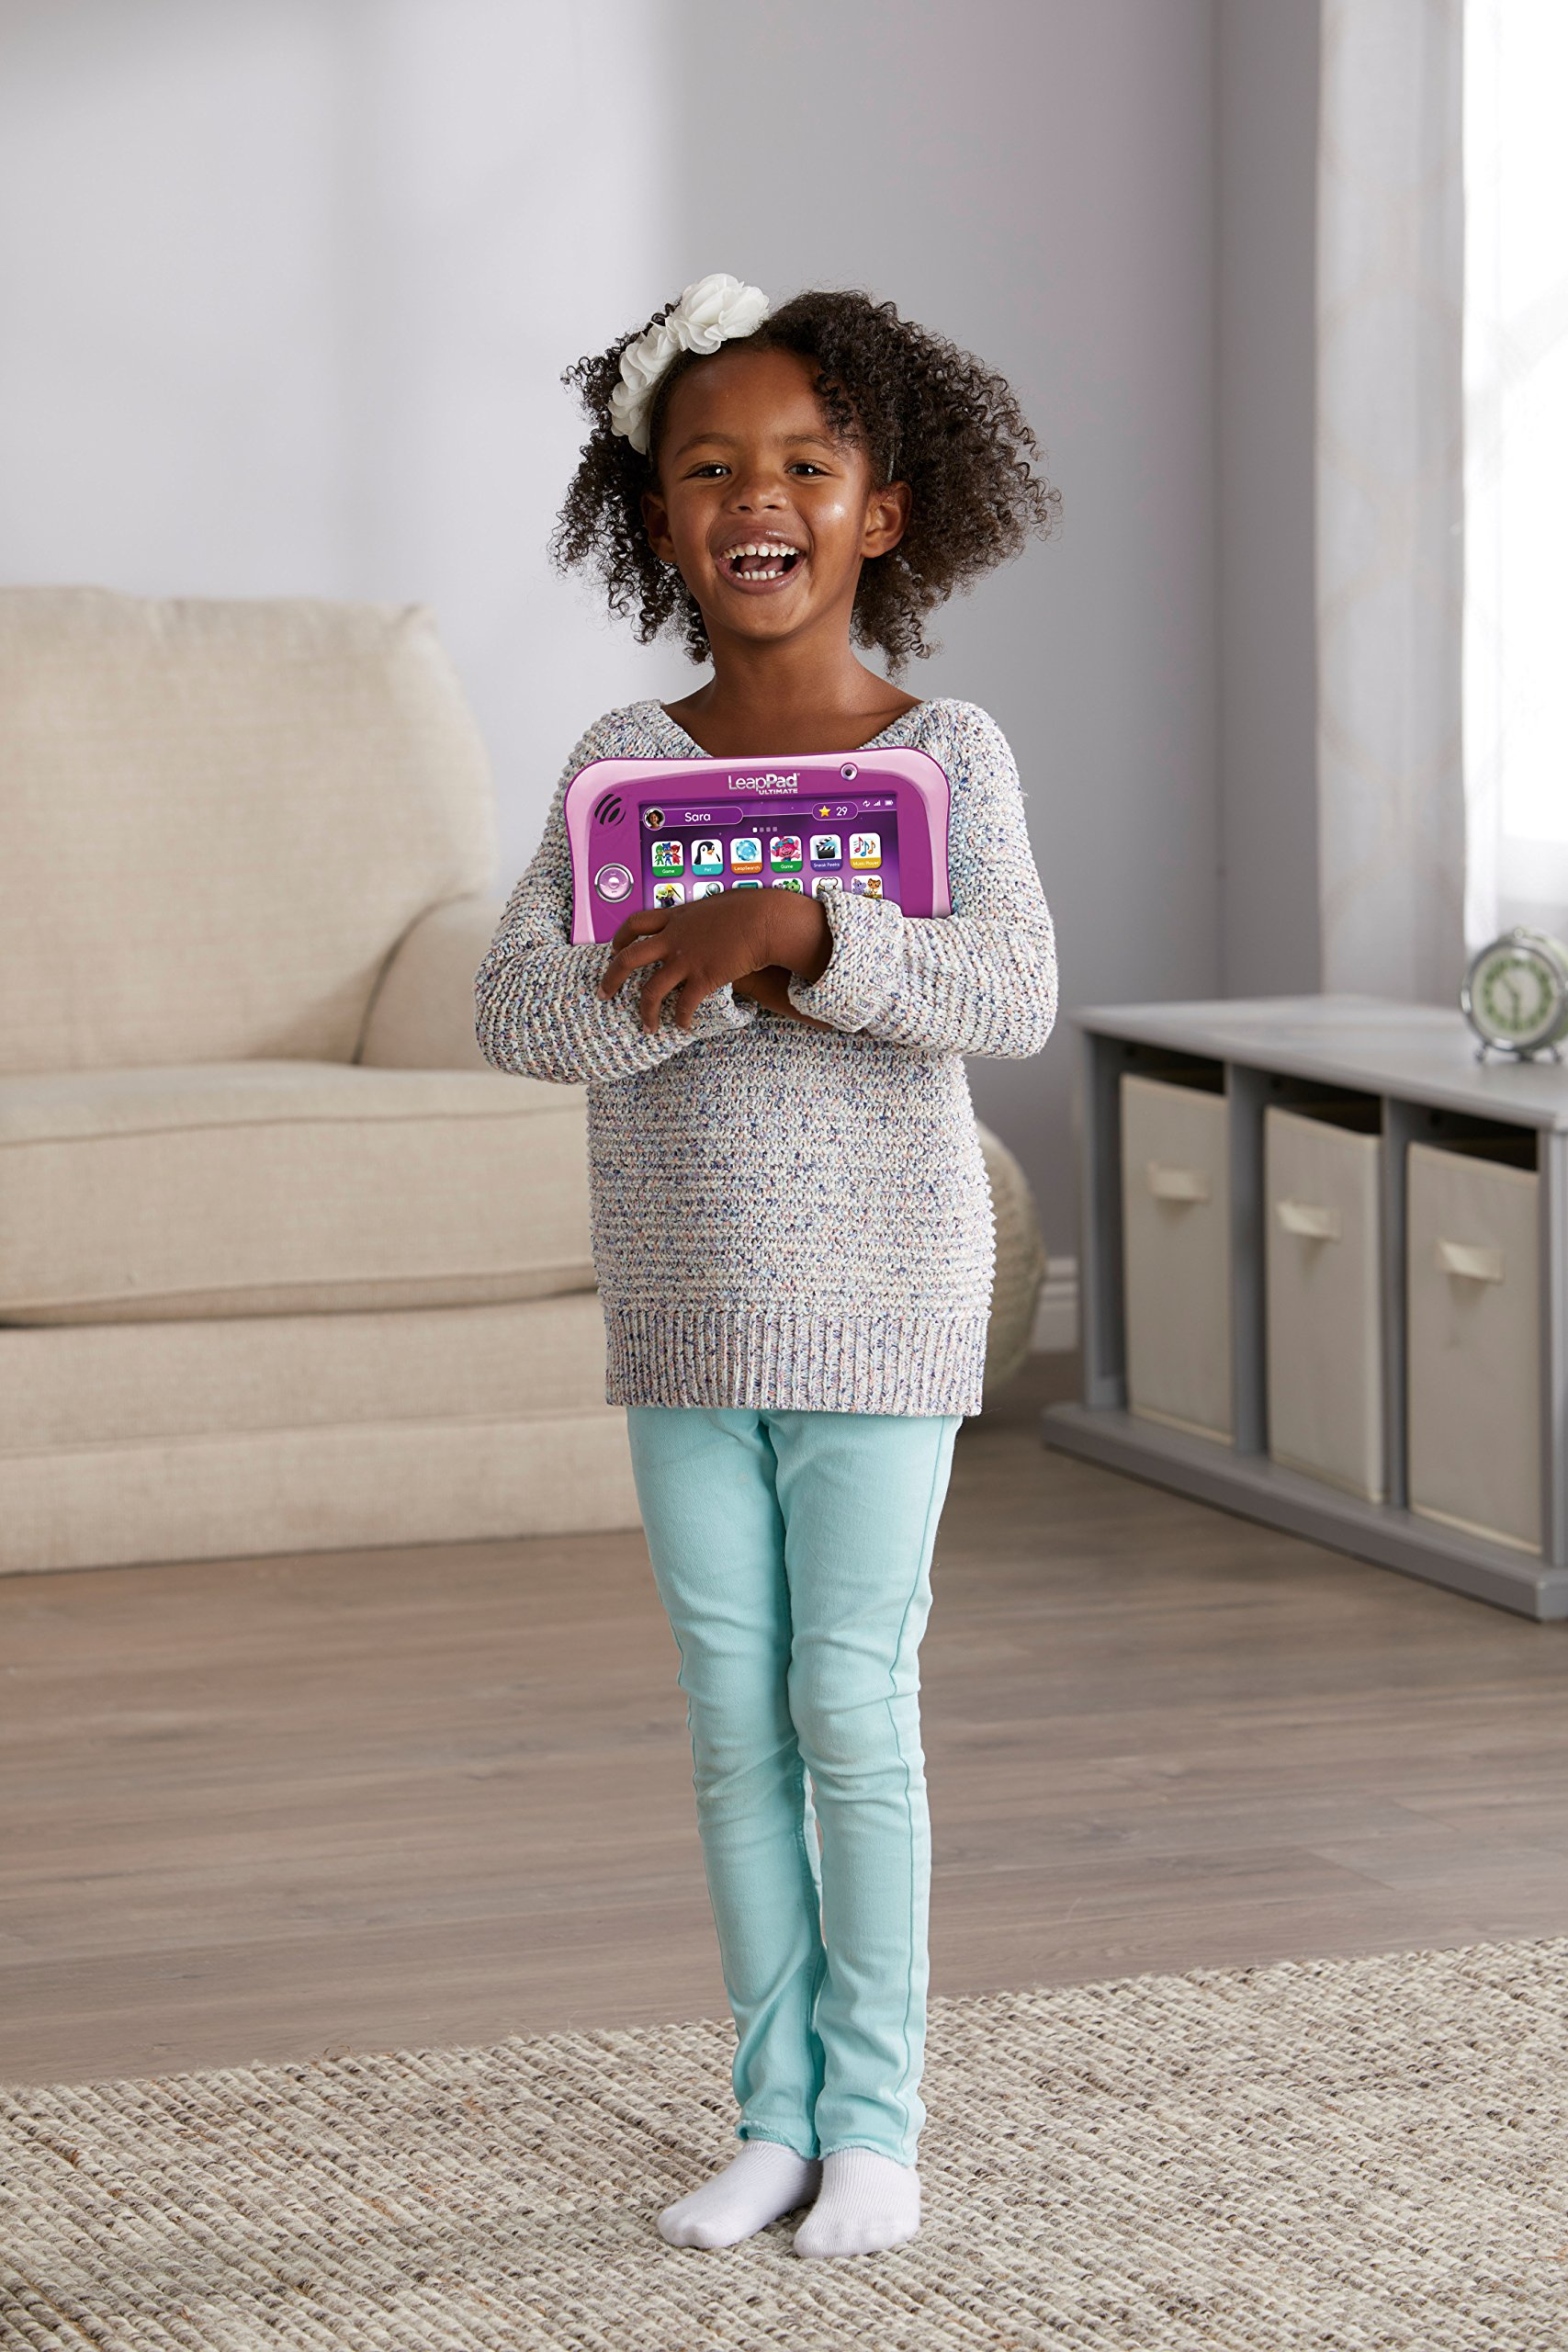 LeapFrog LeapPad Ultimate Ready for School Tablet, Pink by LeapFrog (Image #8)